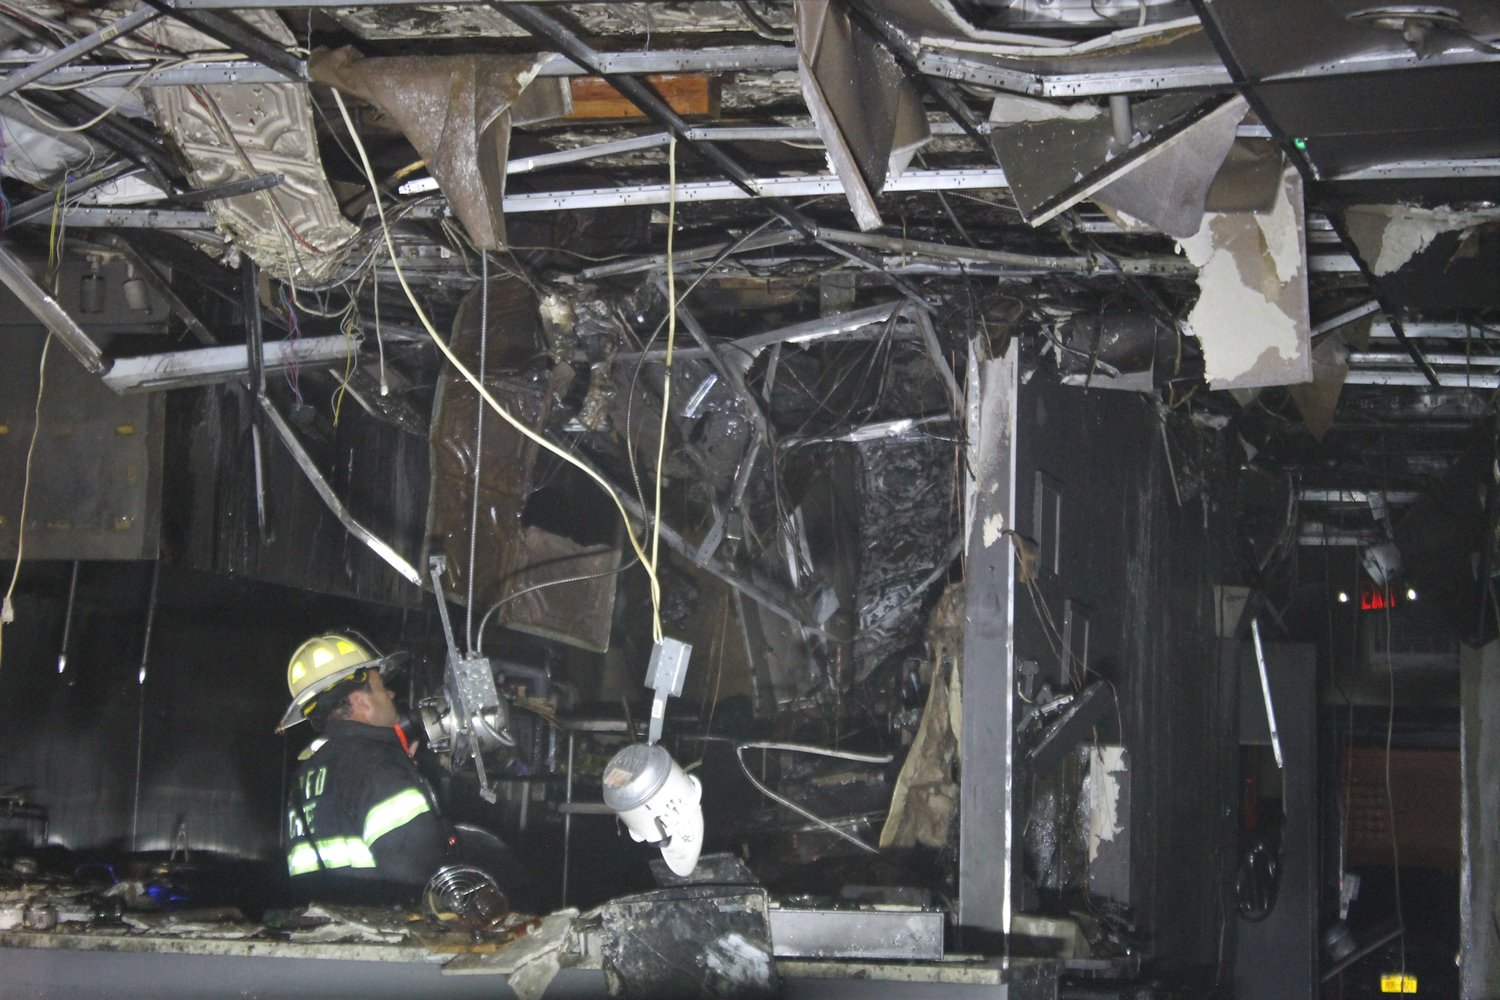 The fire caused significant damage.